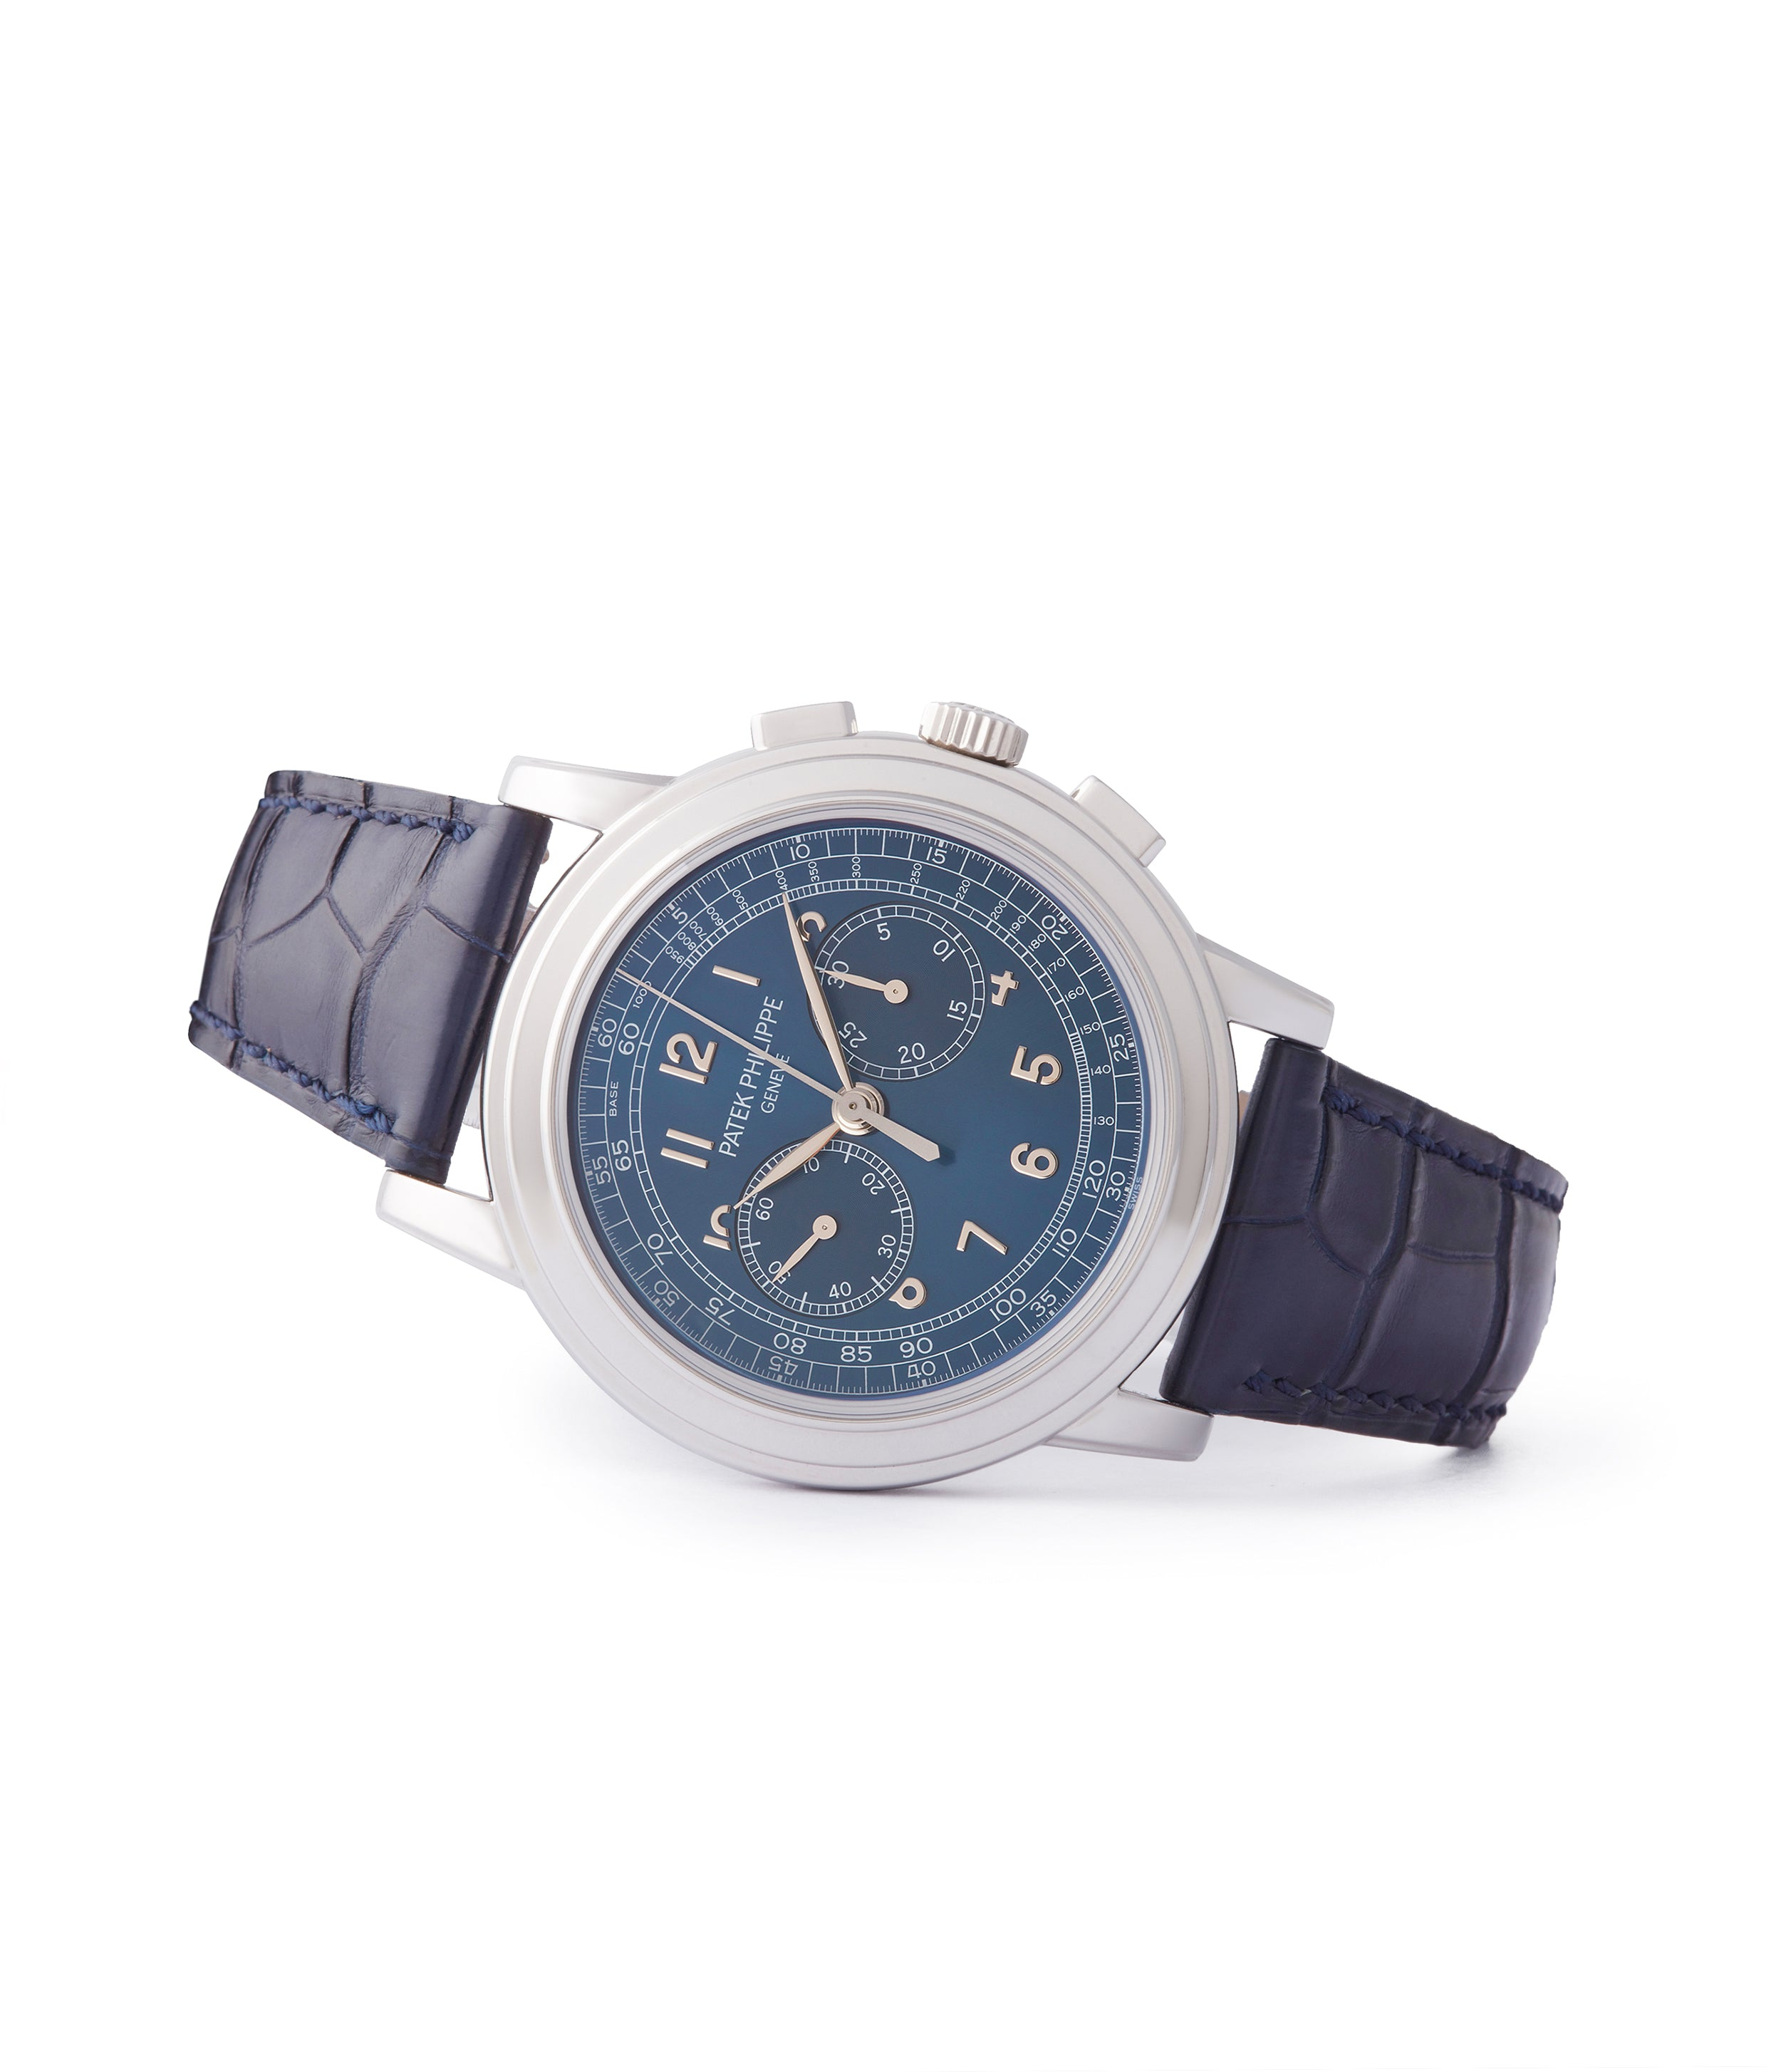 rare Patek Philippe 5070P Saatchi Limited Edition blue dial platinum pre-owned watch for sale online A Collected Man London UK specialist of rare watches